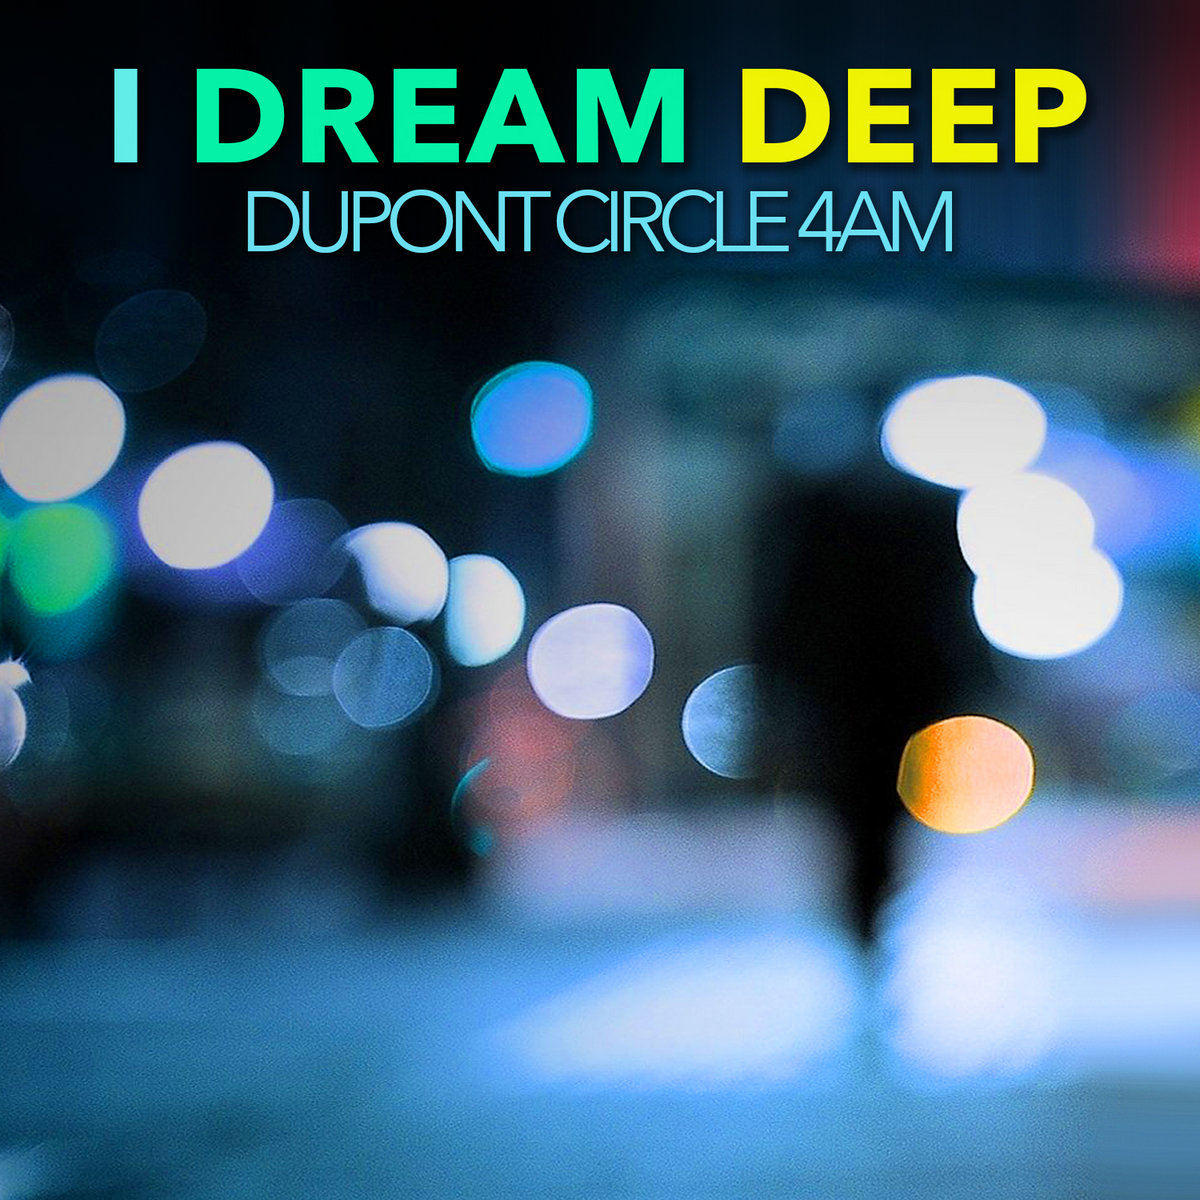 Dupont Circle 4am by I Dream Deep